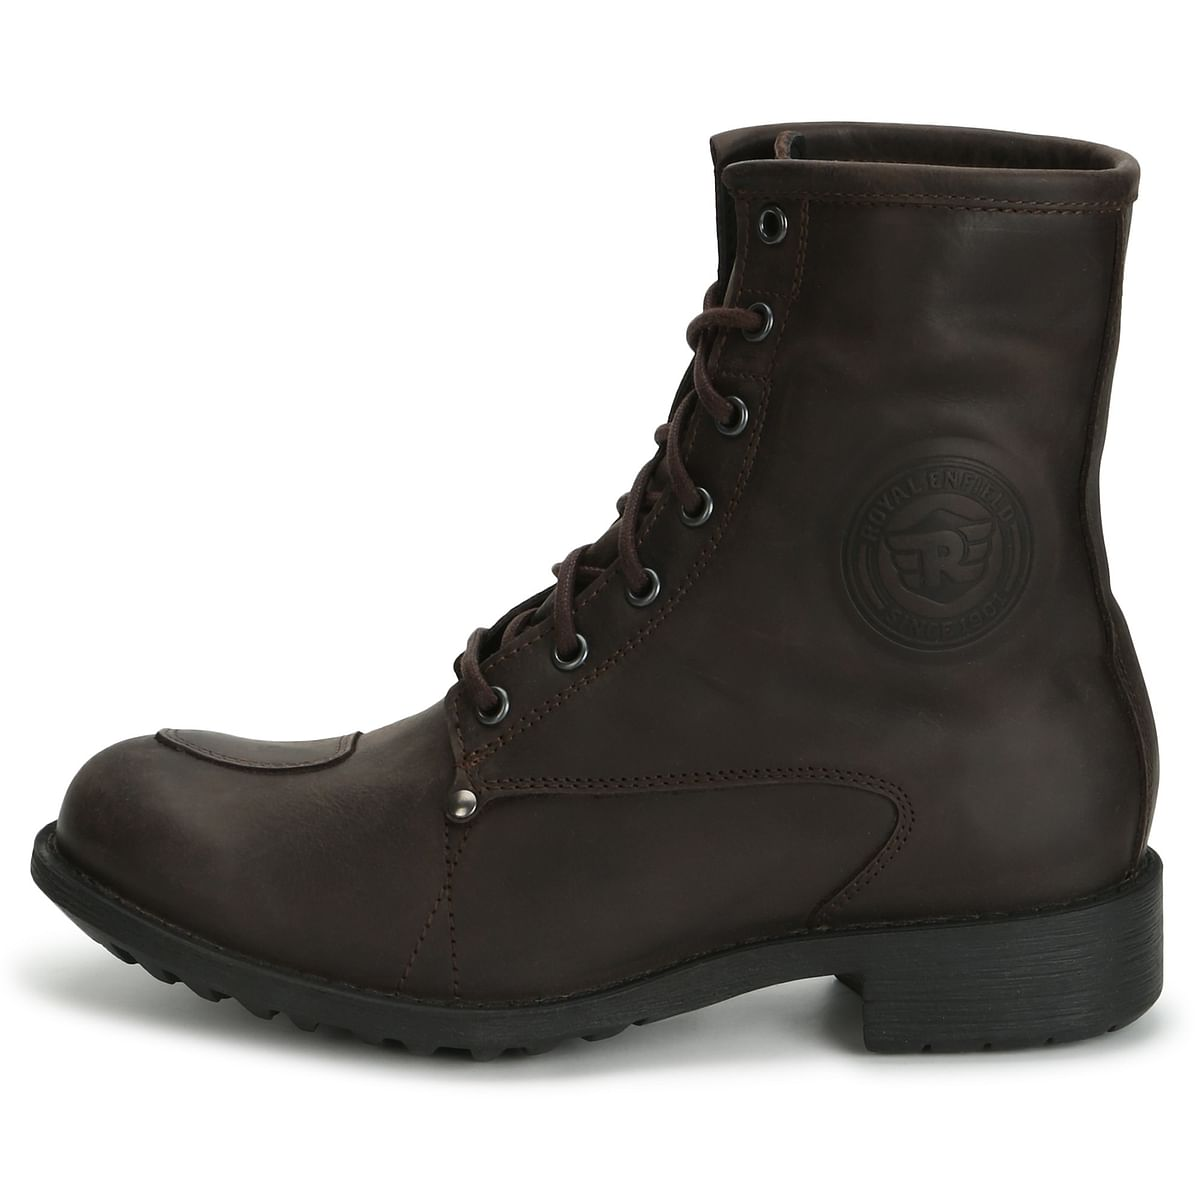 The Grimsel WP boots will be available in only this brown colour